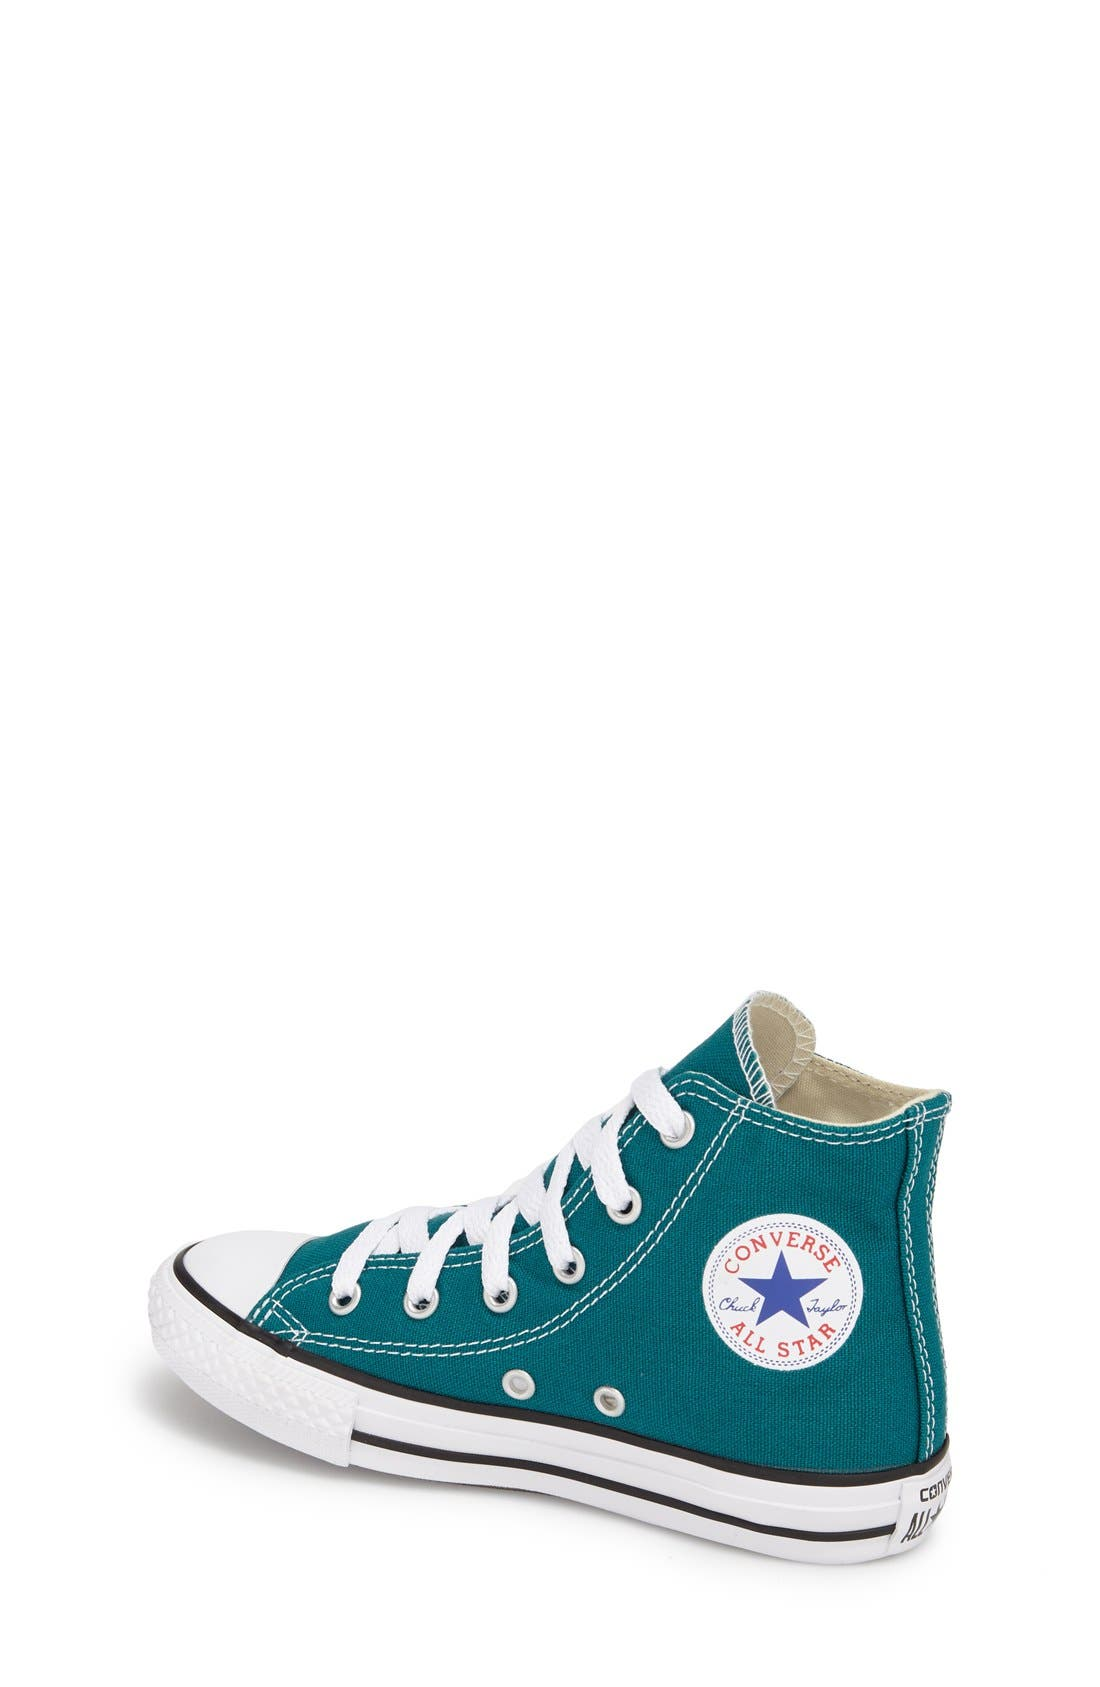 Chuck Taylor<sup>®</sup> All Star<sup>®</sup> 'Madison' High Top Sneaker,                             Alternate thumbnail 2, color,                             469